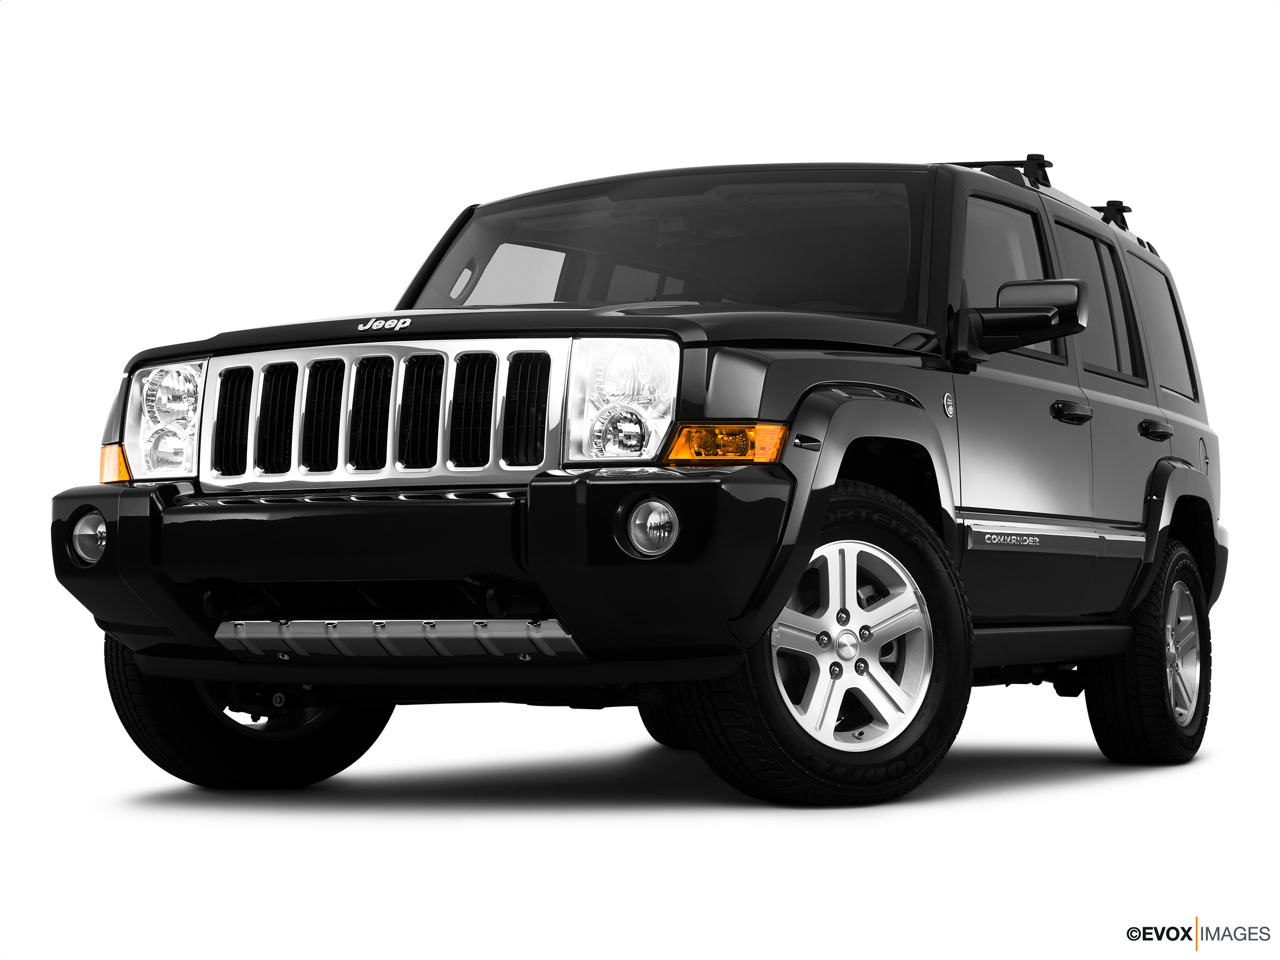 2010 Jeep Commander Limited Front angle view, low wide perspective.